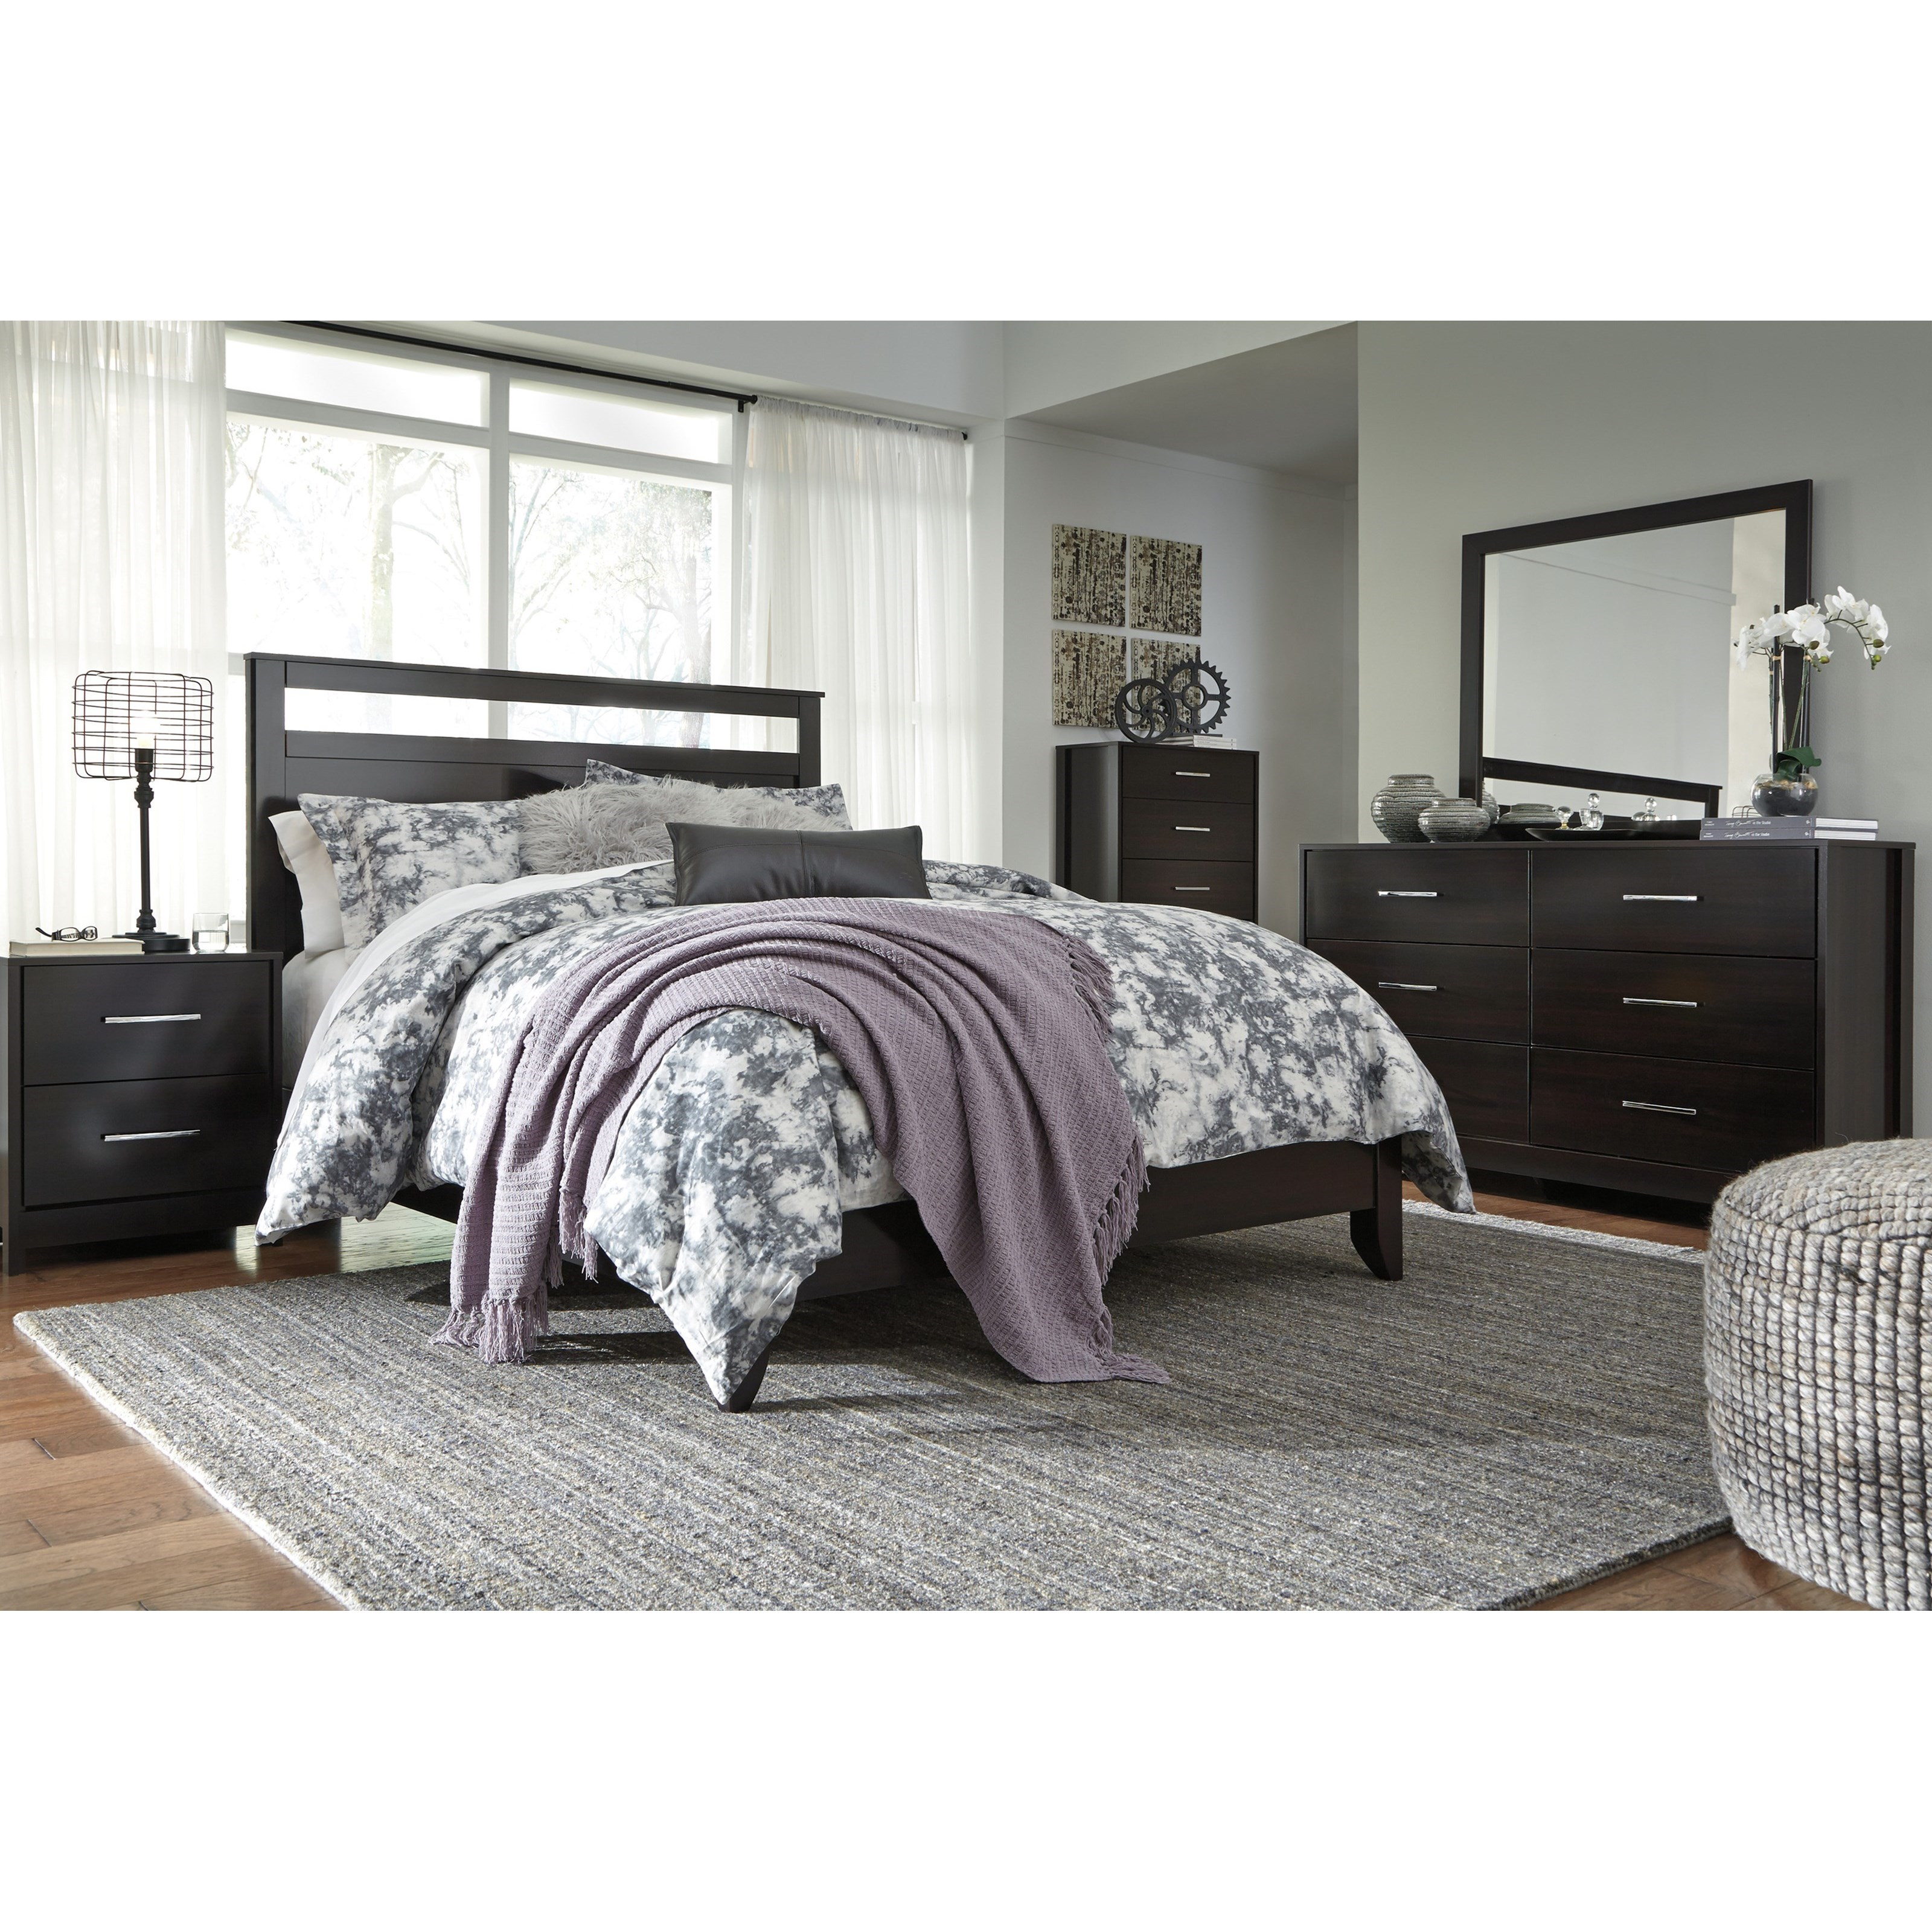 Signature Design by Ashley Agella Queen Bedroom Group - Item Number: B072 Q Bedroom Group 1